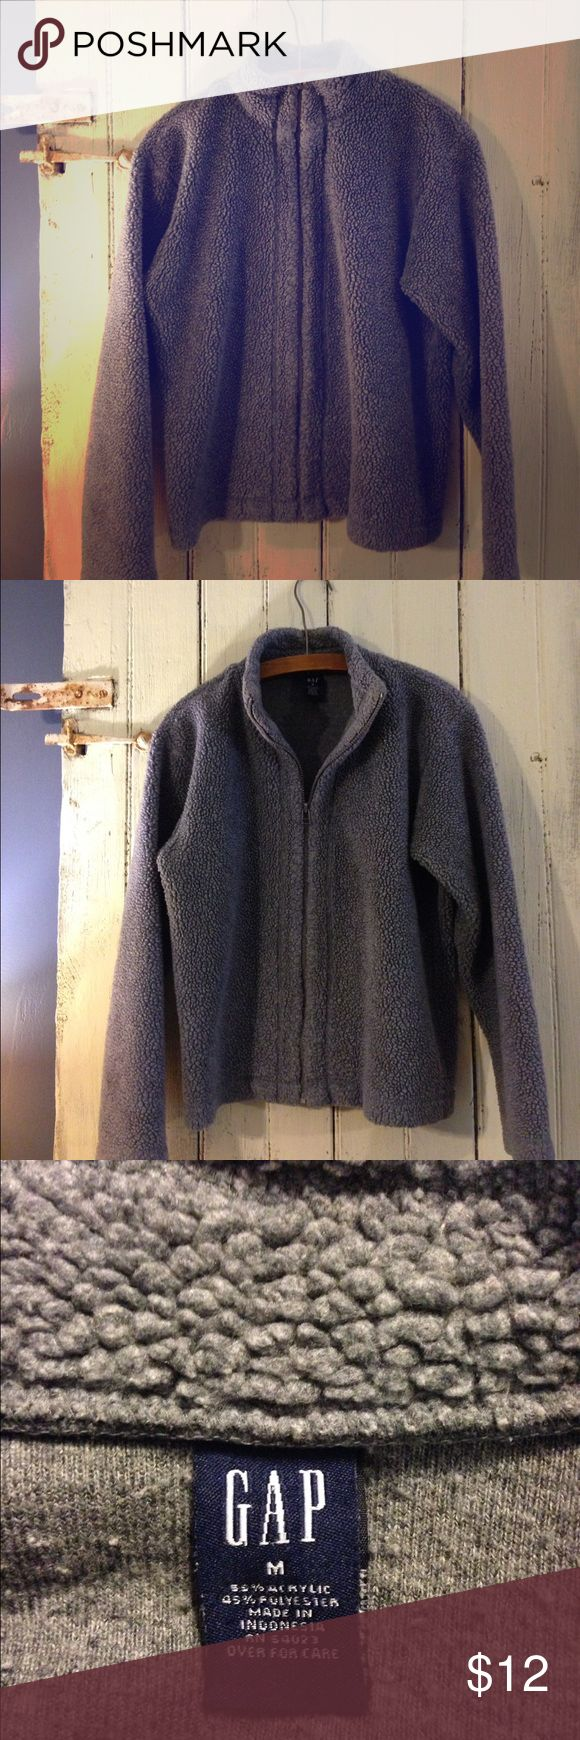 "Gap jacket Grey ""wooly"" like jacket from the Gap. Perfect for cool fall days. GAP Jackets & Coats"